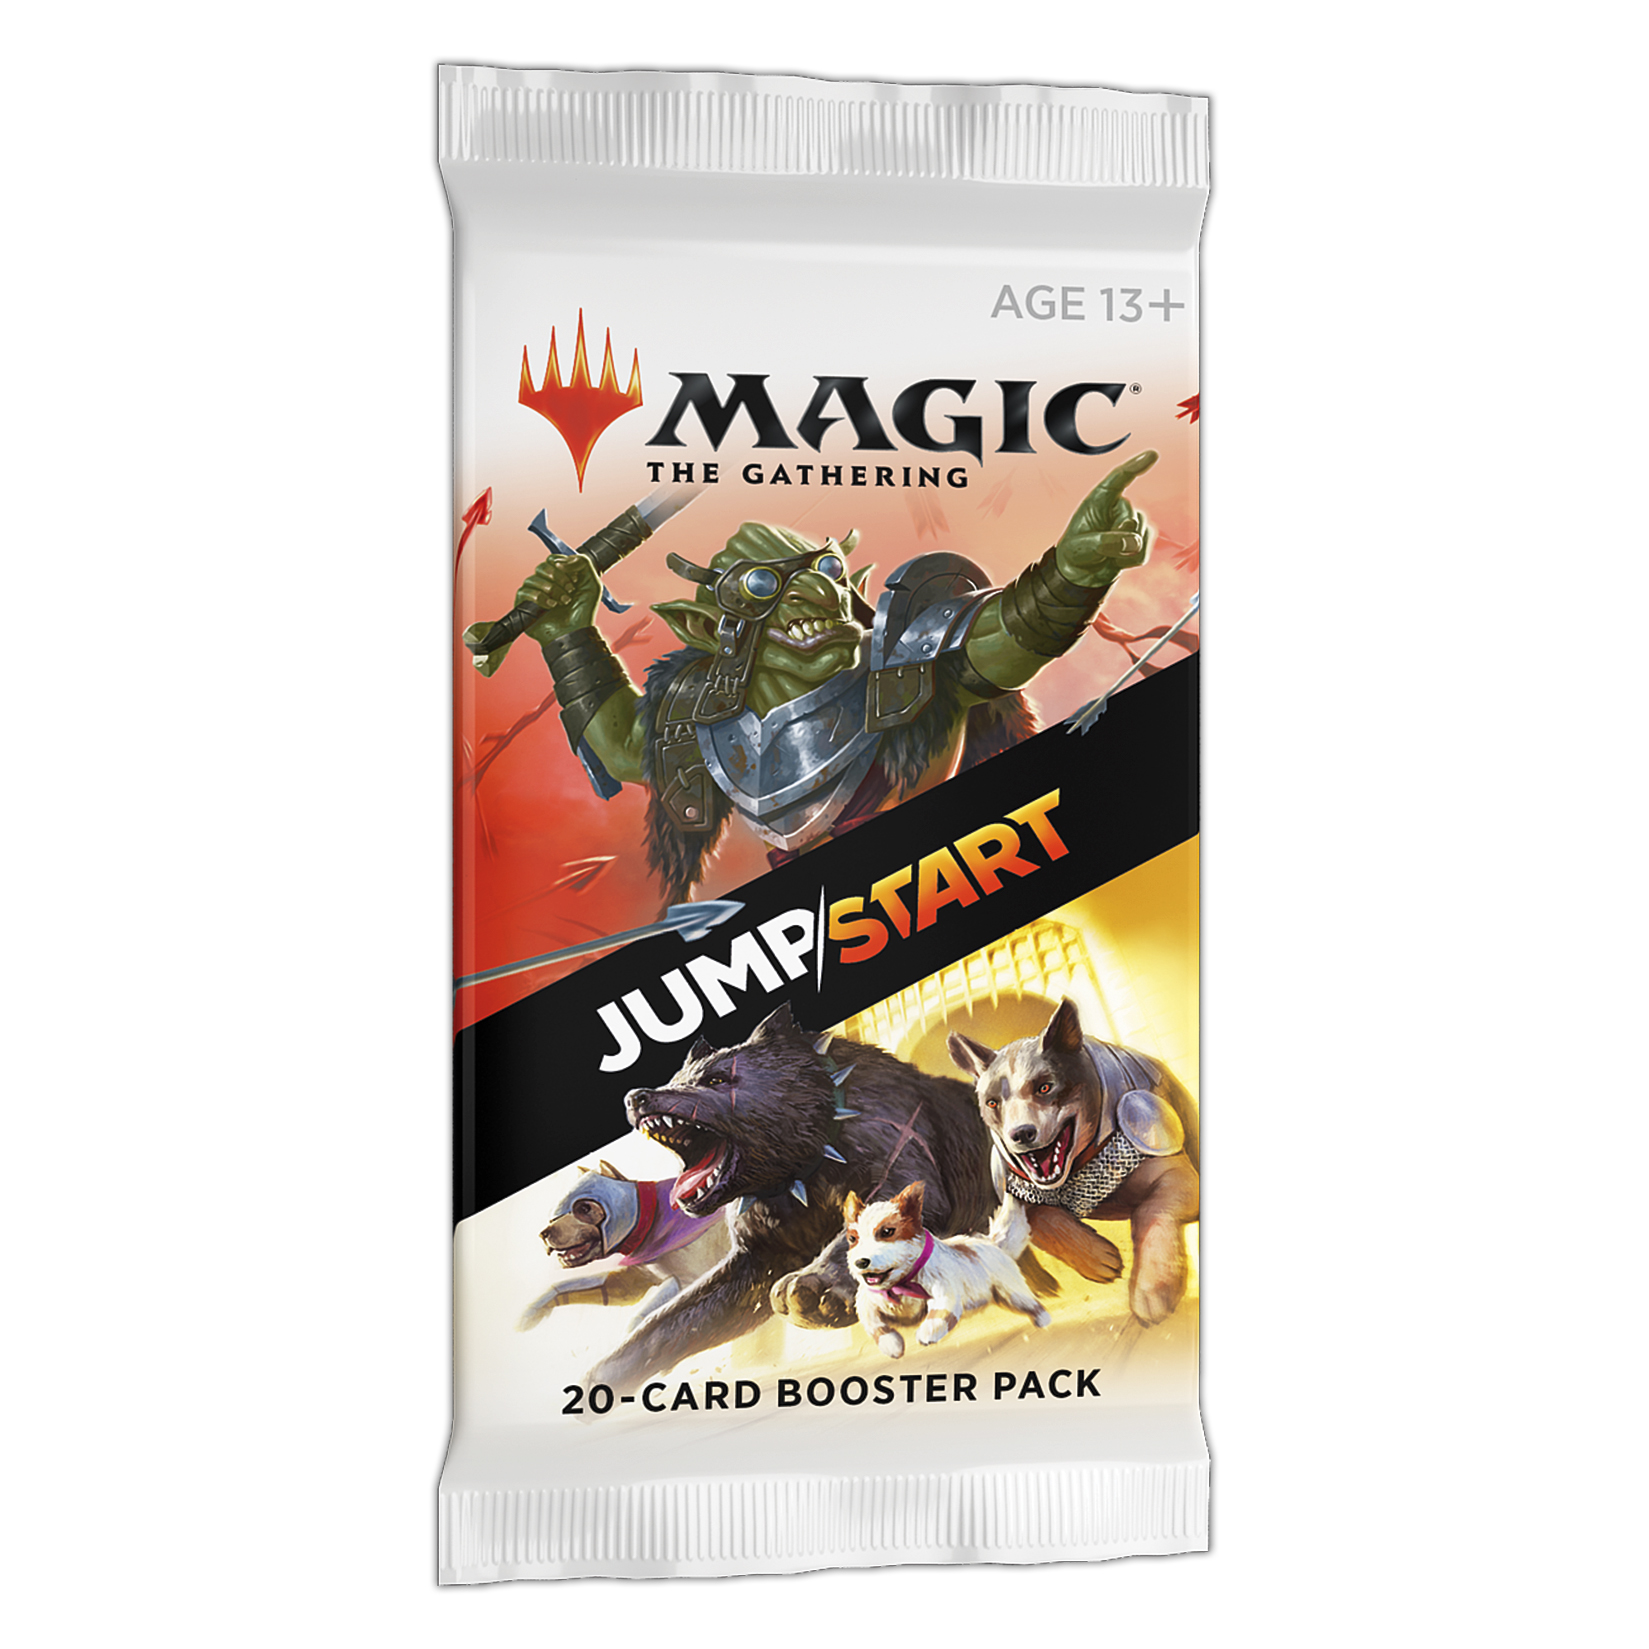 MAGIC THE GATHERING JUMPSTART BOOSTER